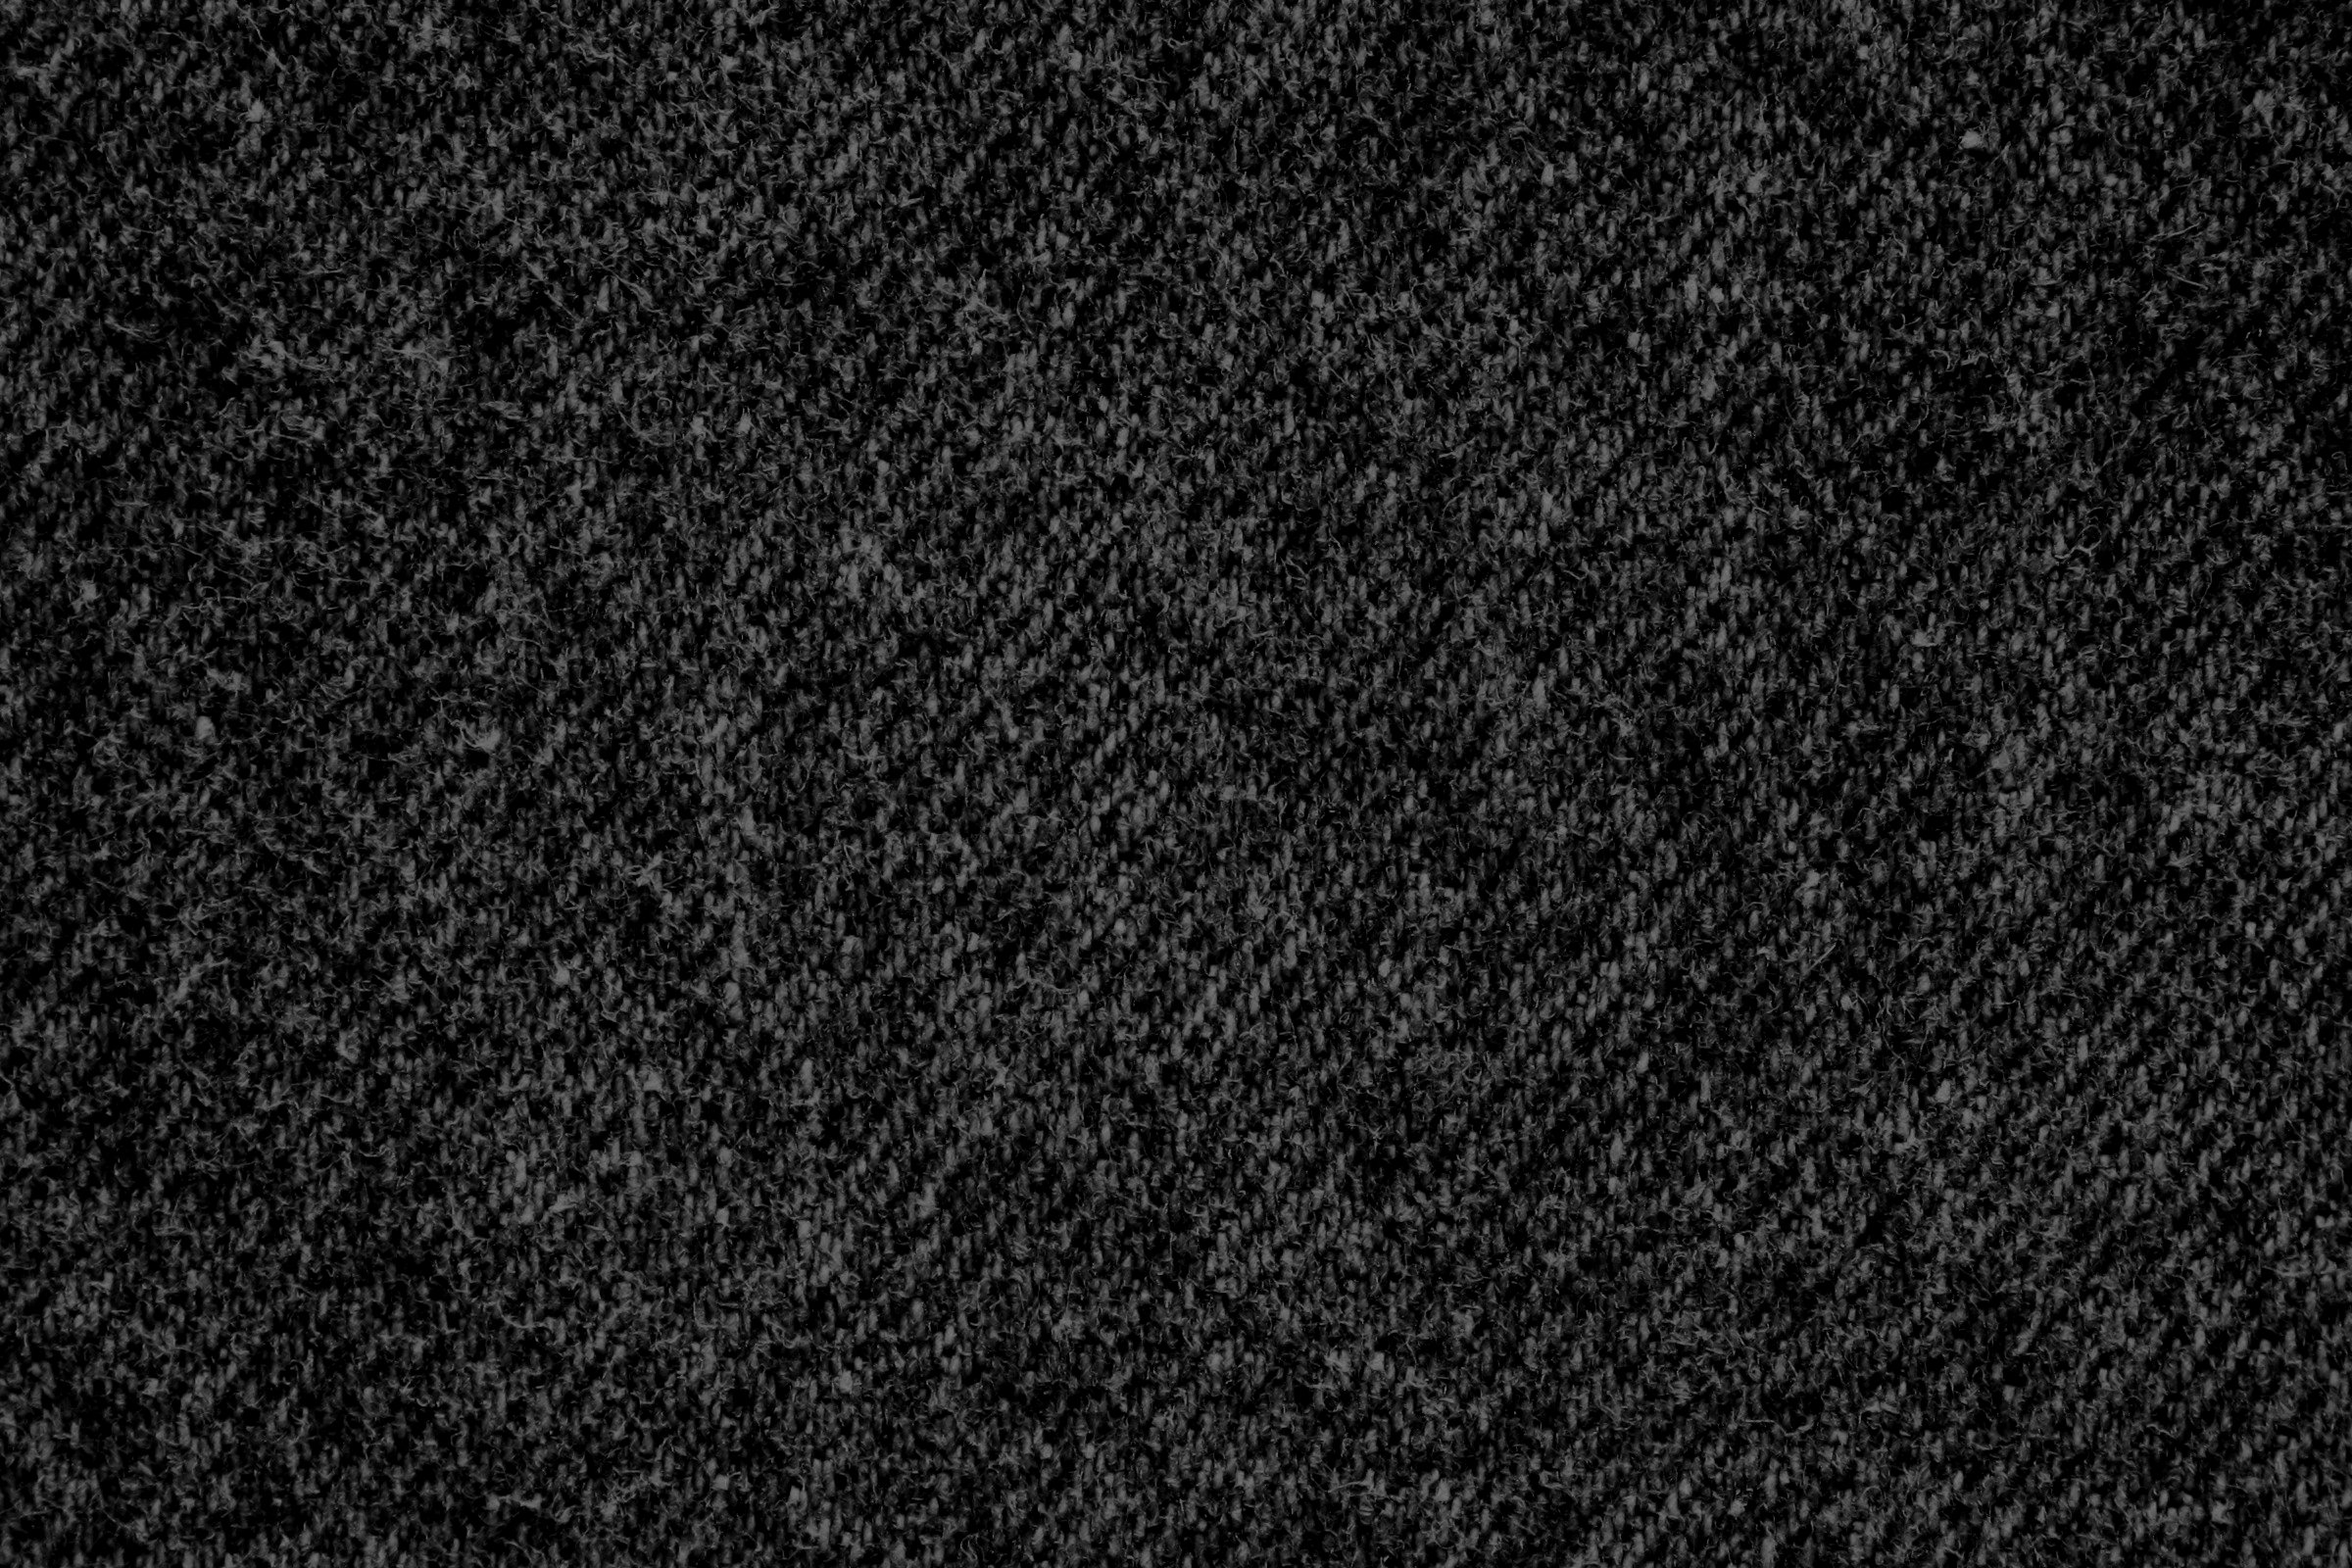 Black denim fabric texture picture free photograph for Black fabric